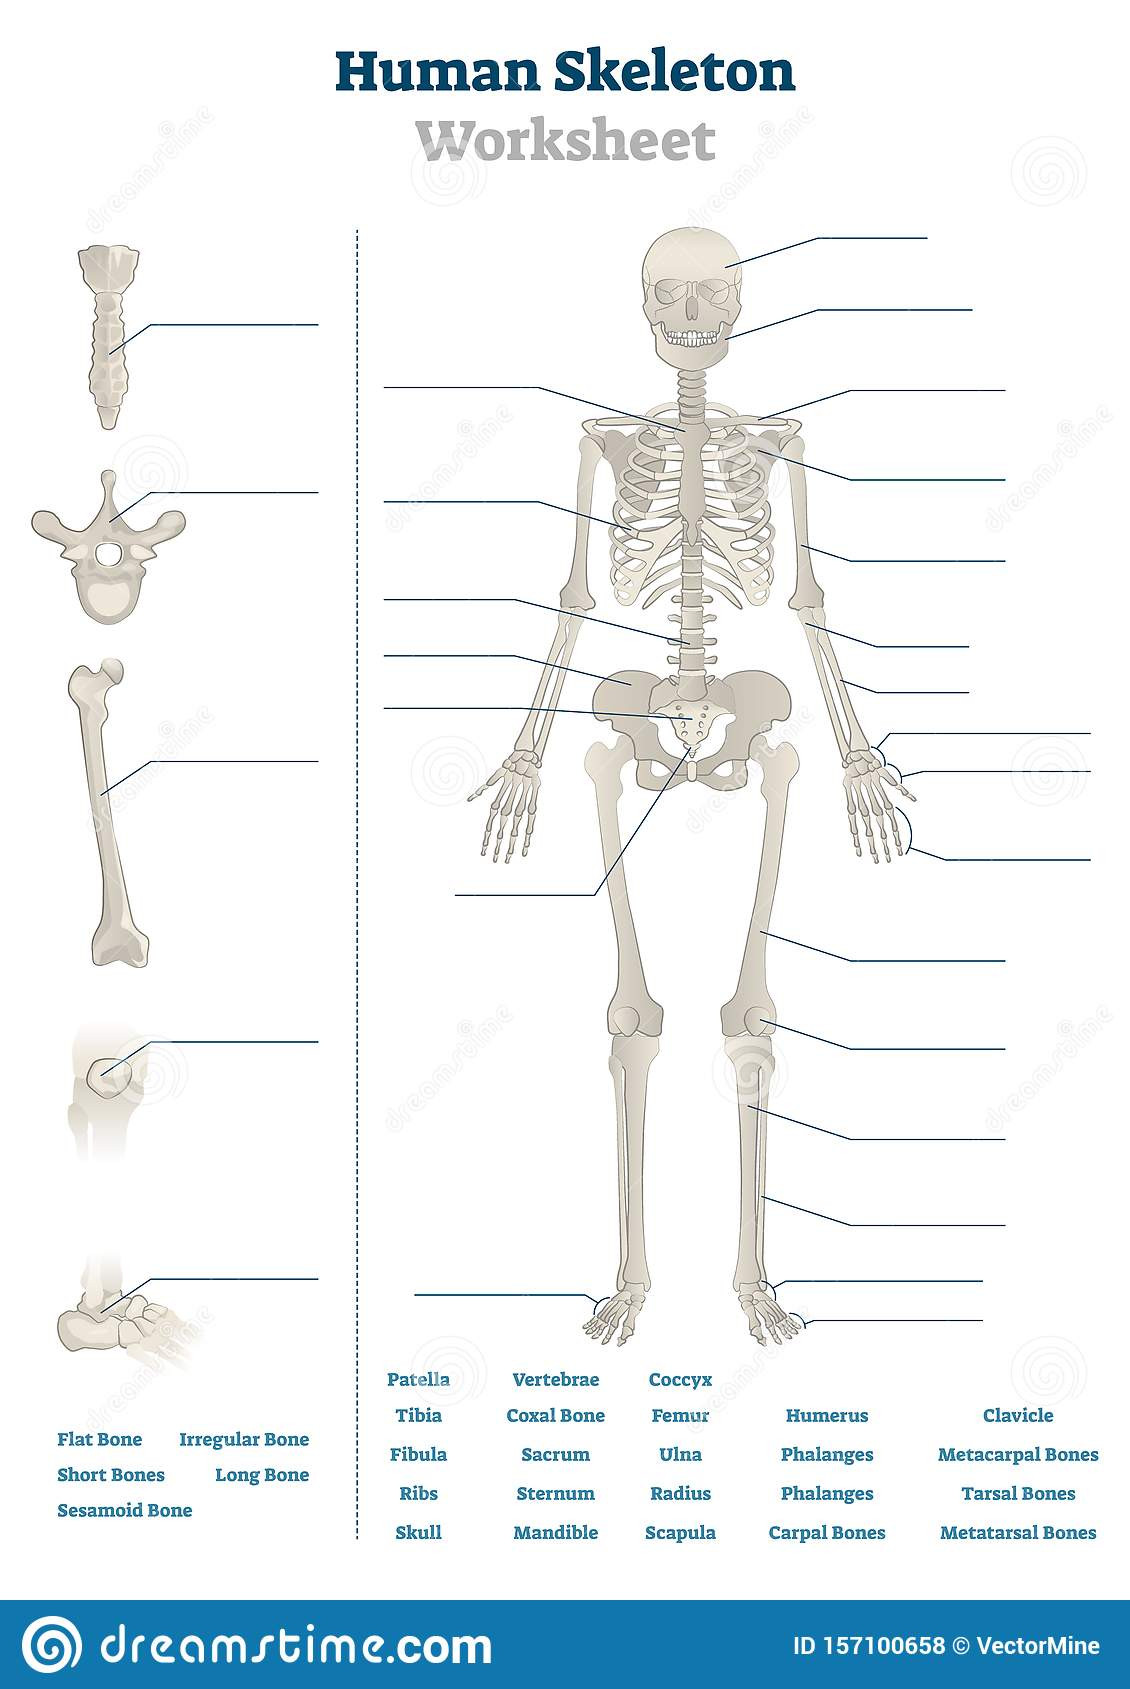 Human Skeleton Worksheet Vector Illustration Blank